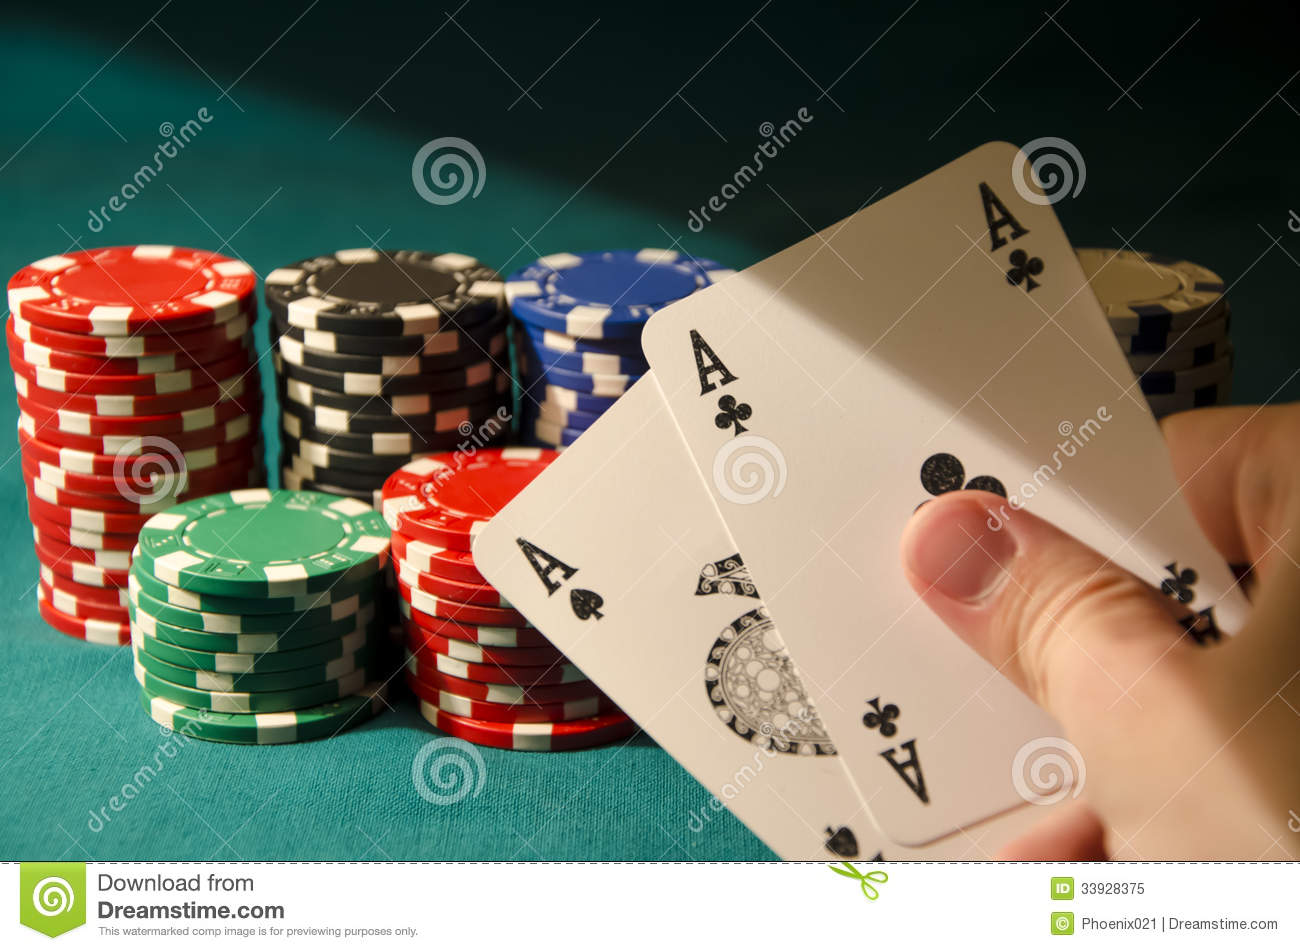 pocket ace poker solutions